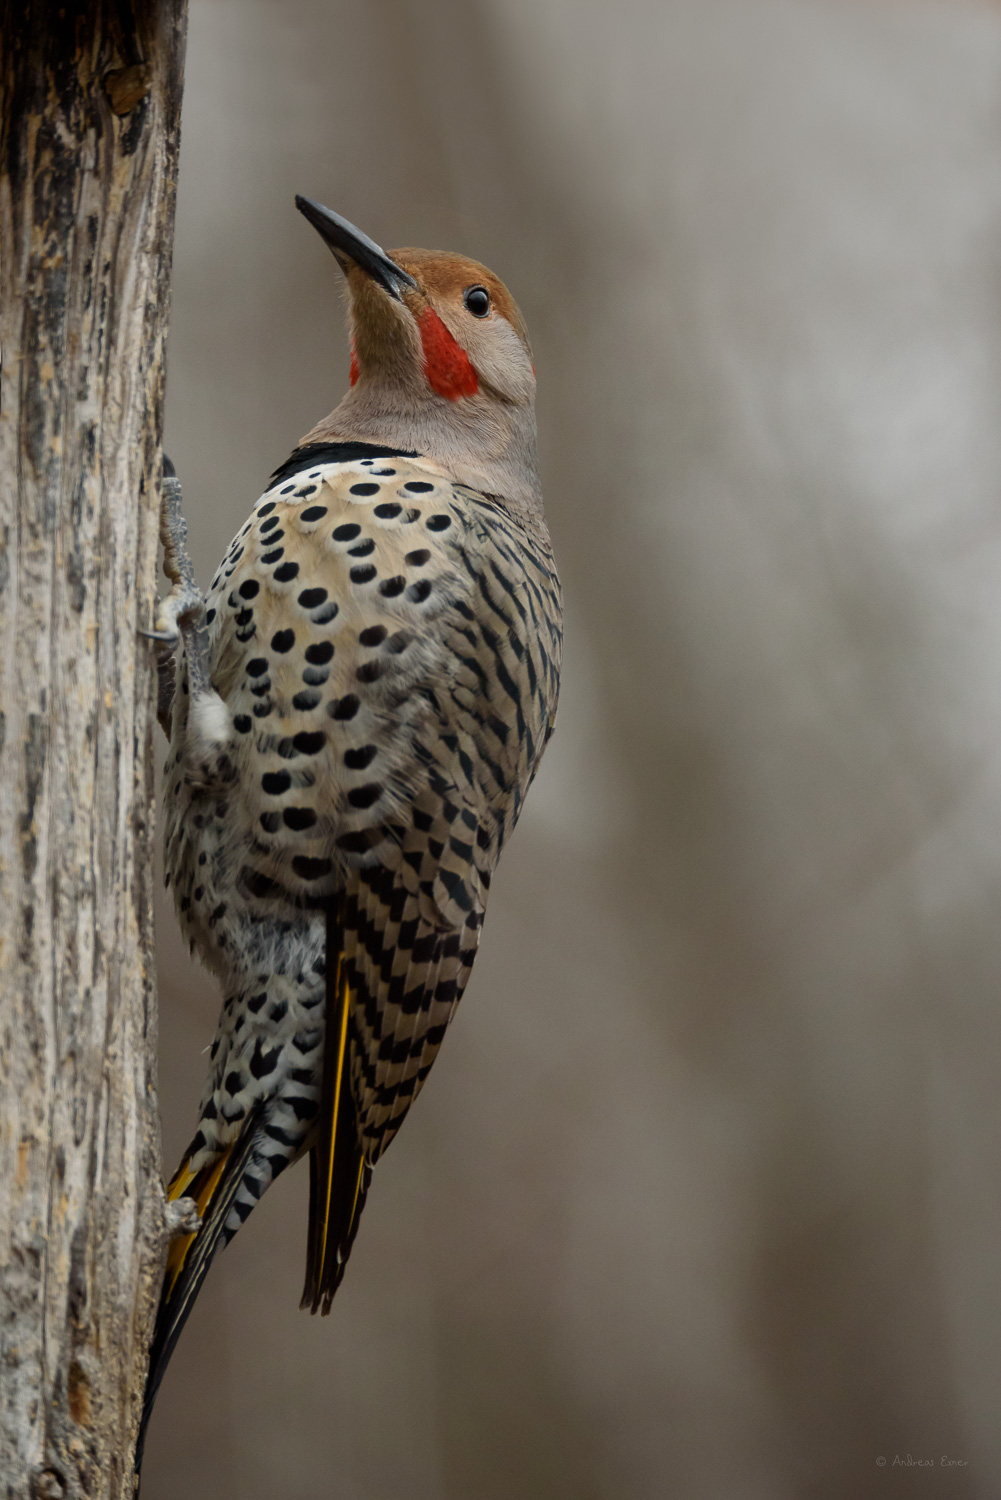 Intergrade between Red-shafted and Yellow-shafted Northern Flicker